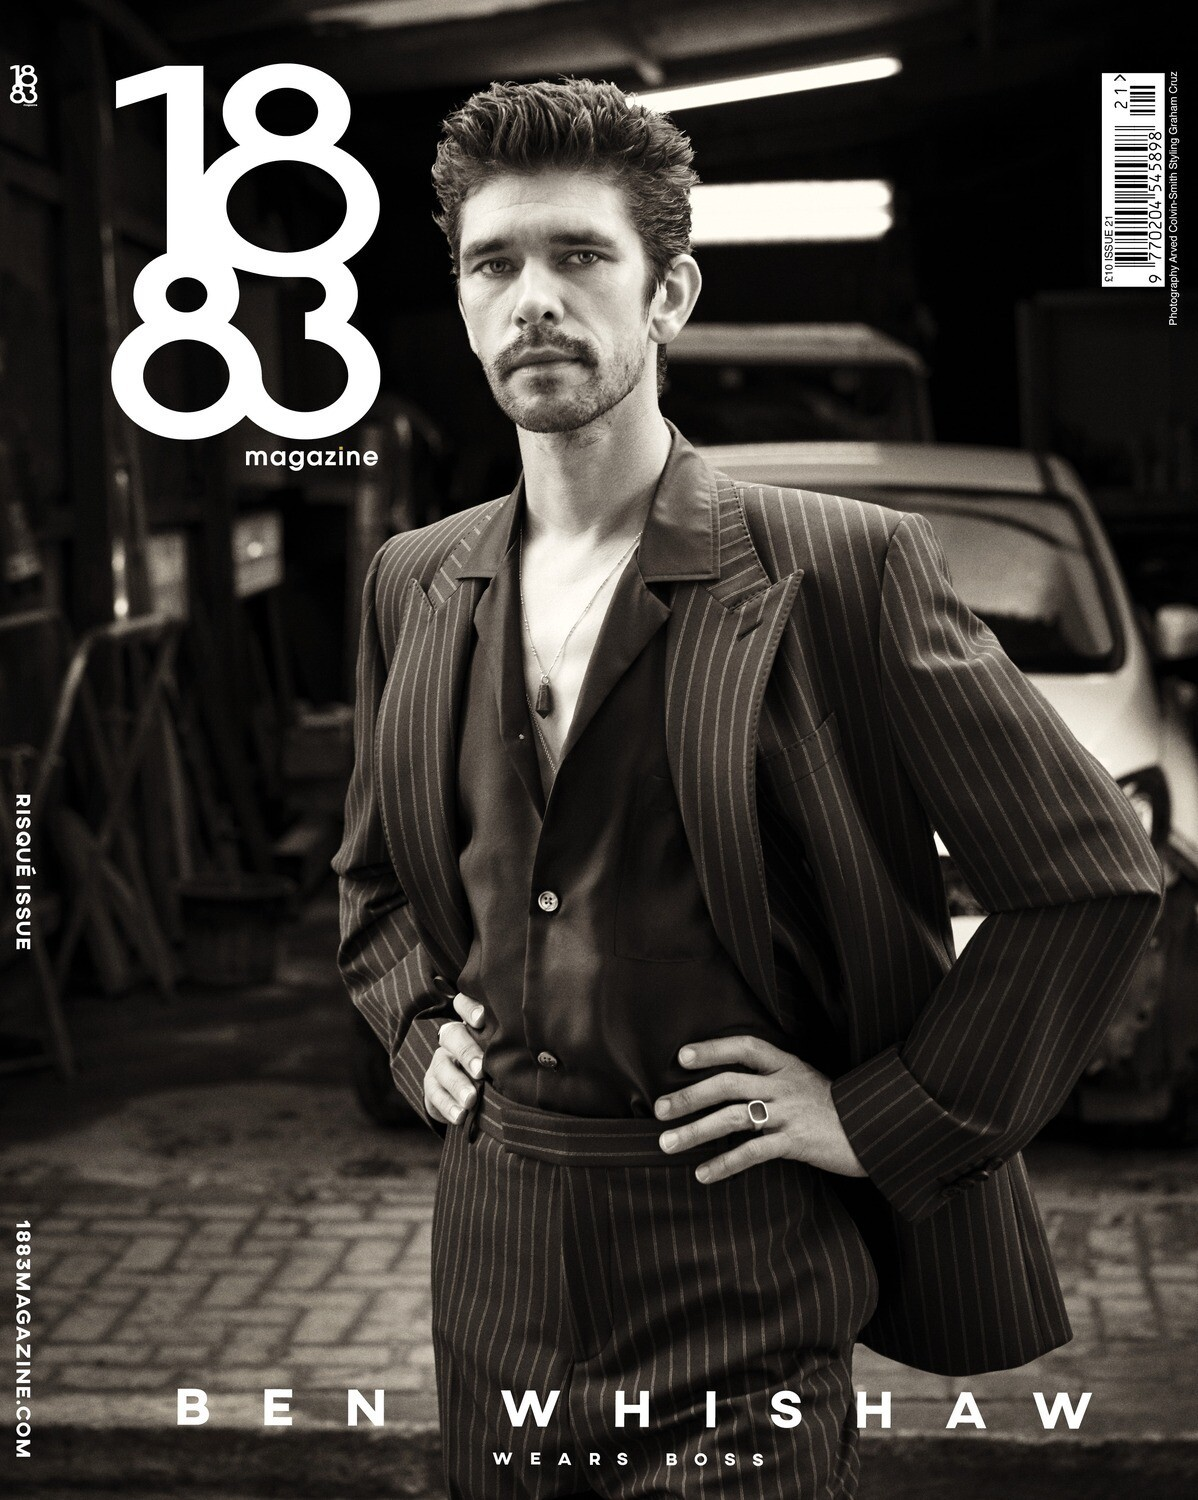 Ben Whishaw for 1883 magazine.